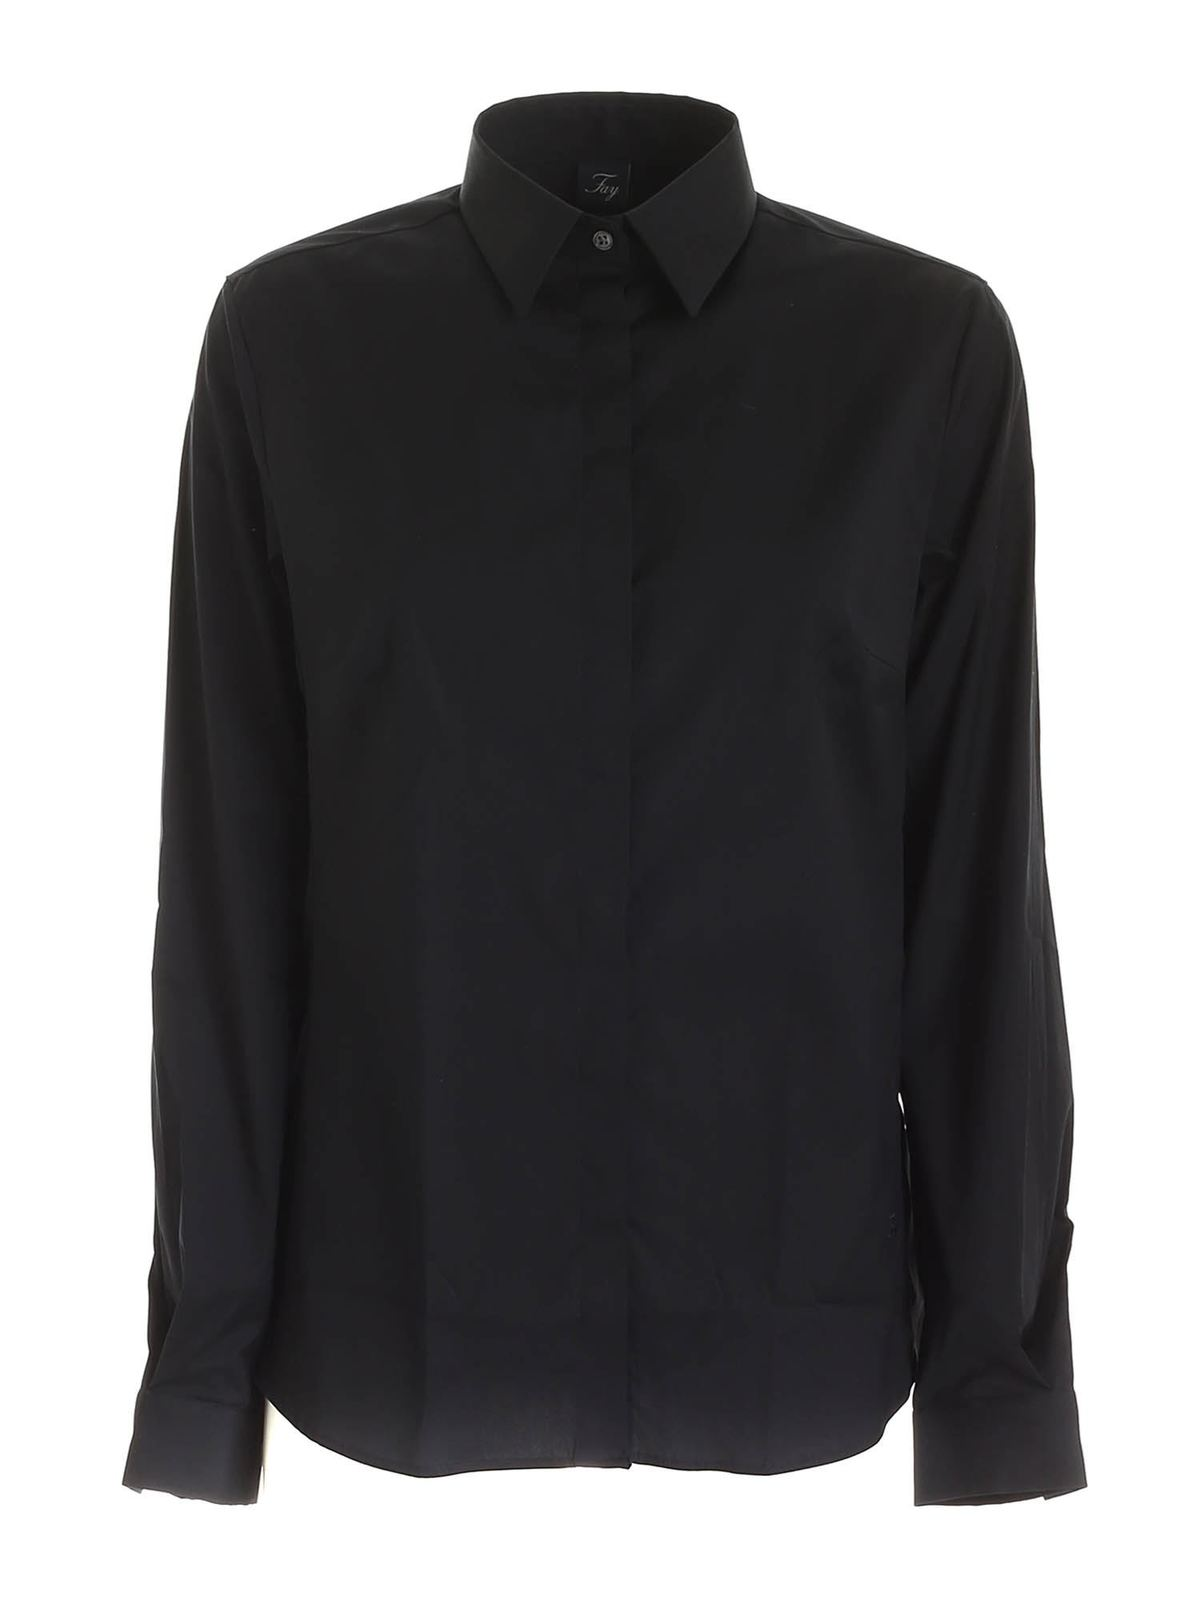 Fay LOGO EMBROIDERY SHIRT IN BLACK